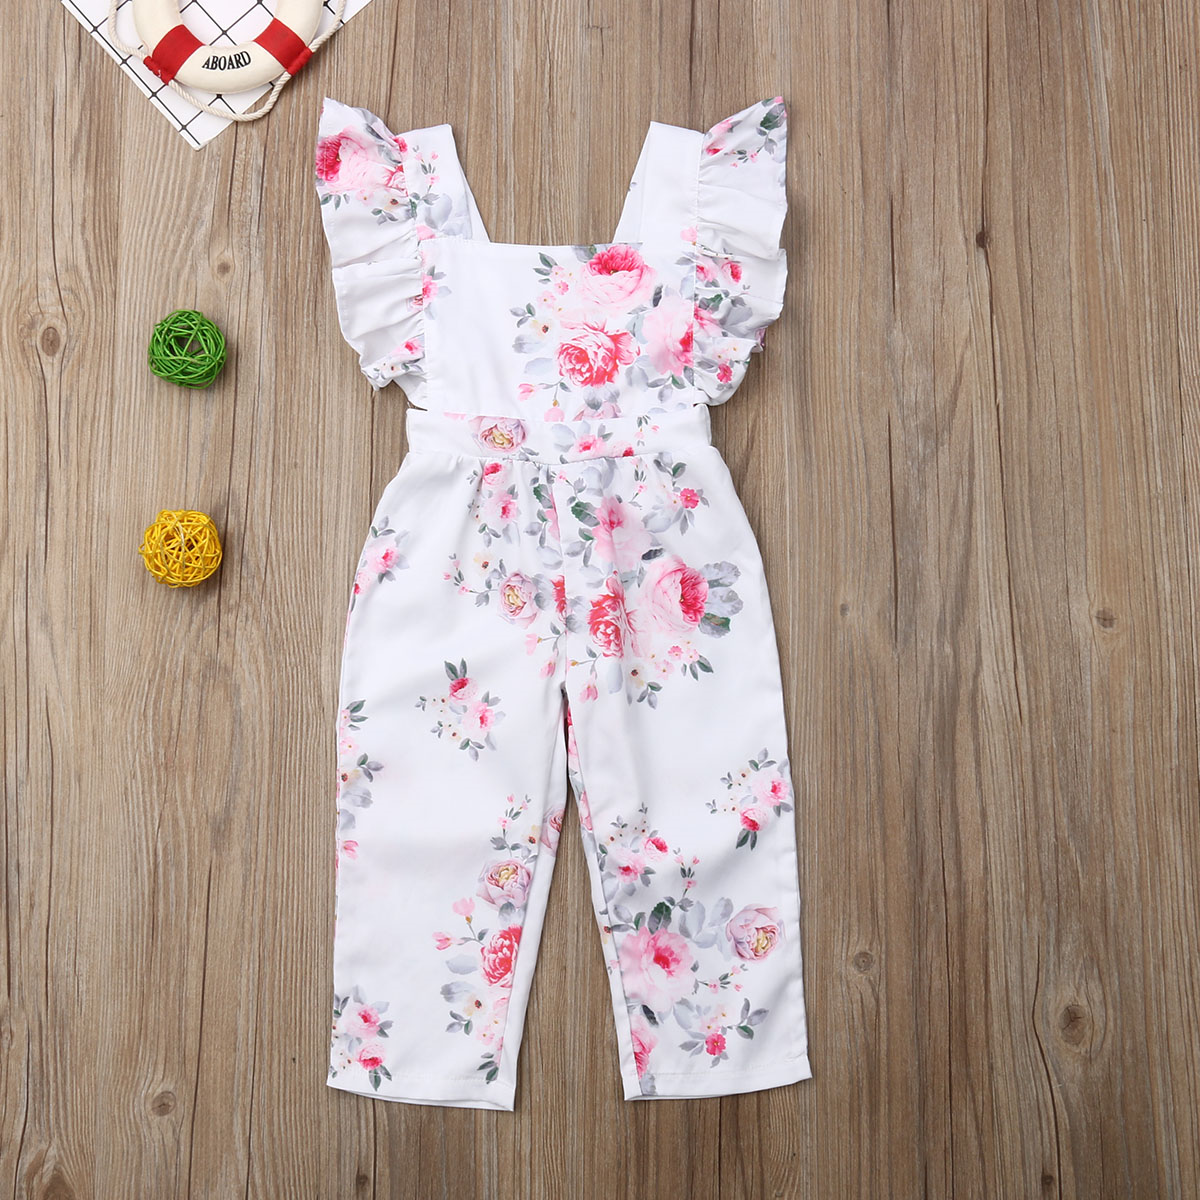 Primary image for NWT Girls Floral Ruffle Romper Sunsuit Jumpsuit 2T 3T 4T 5T